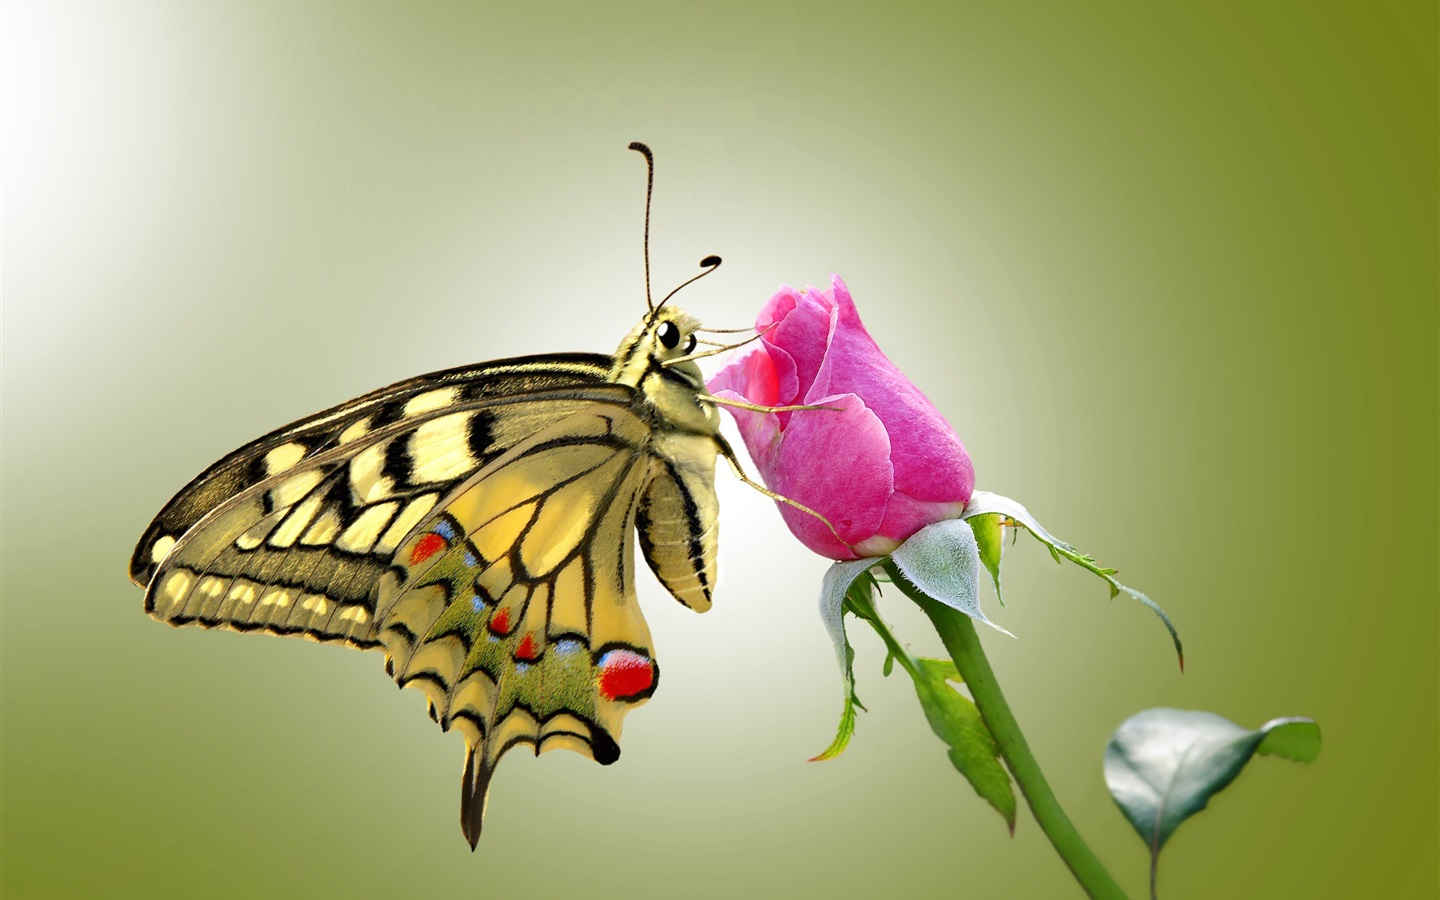 Butterfly and pink rose wallpaper 1440x900